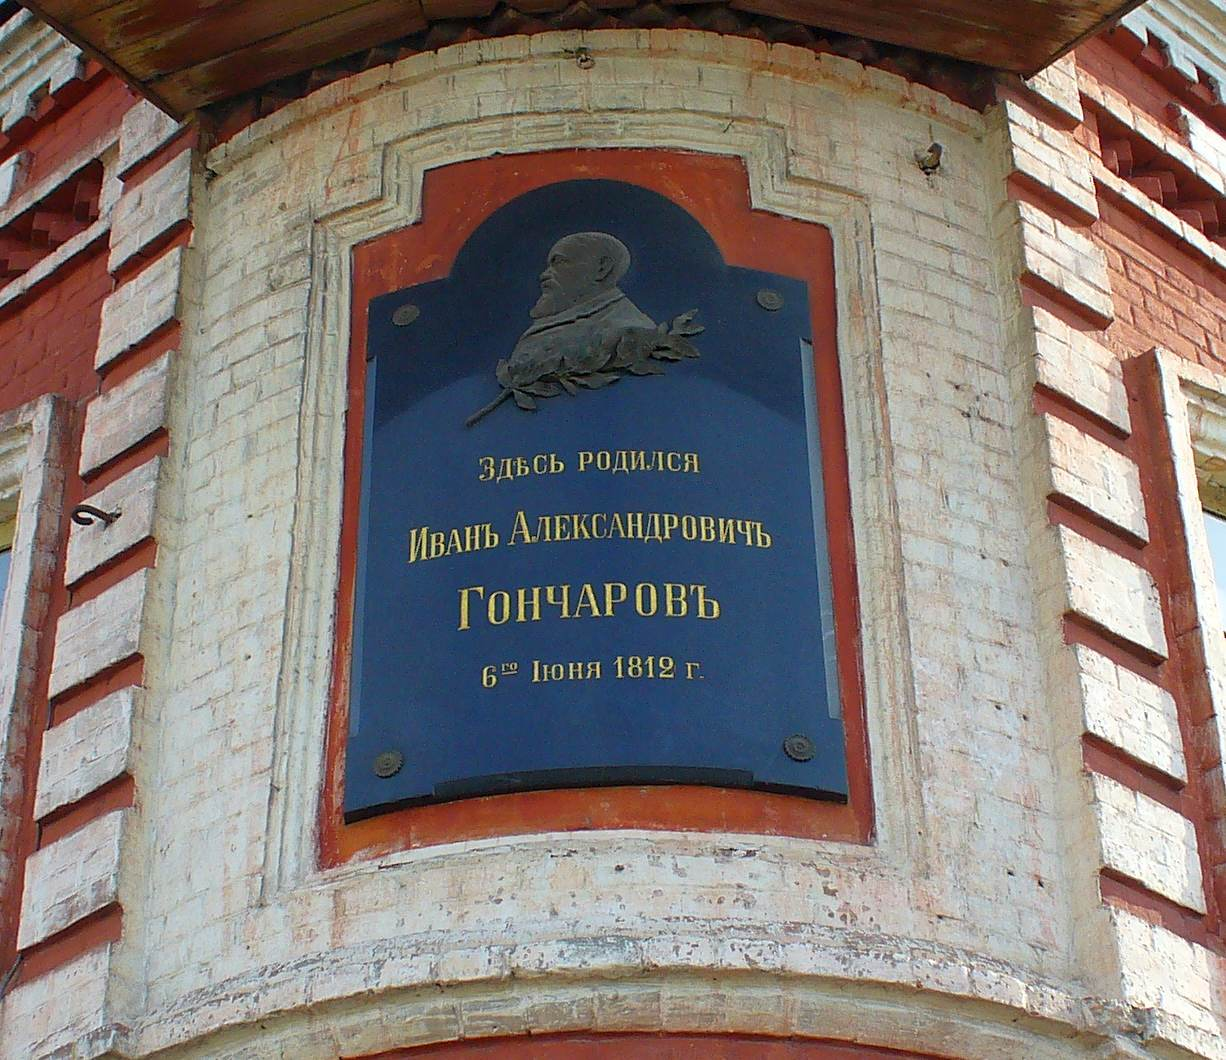 Photo of Ivan Alexandrovich Goncharov black plaque